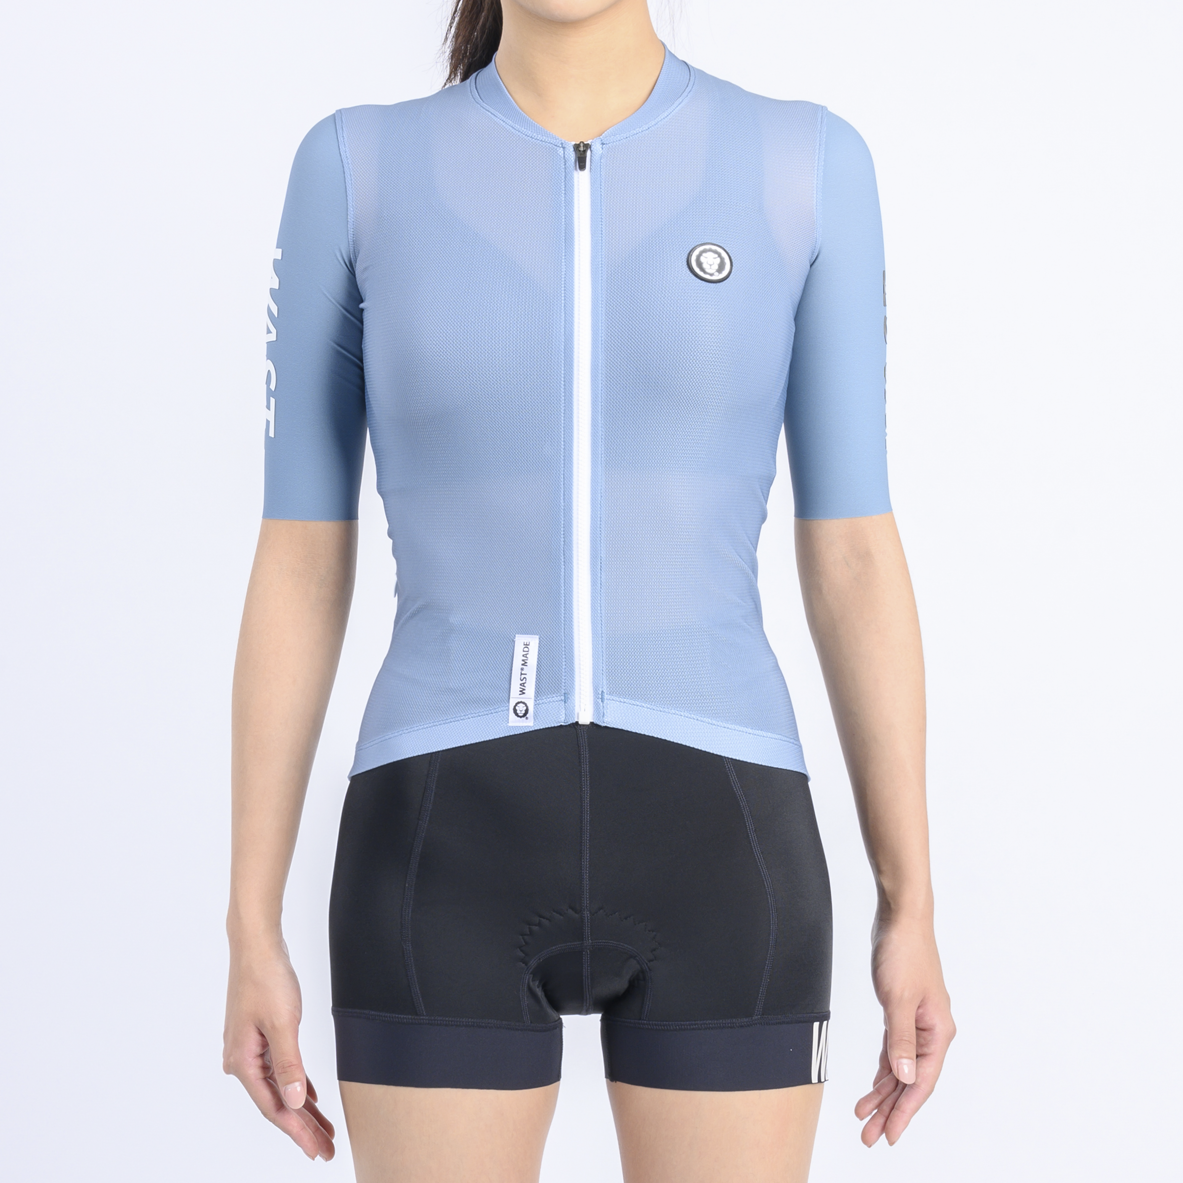 /archive/product/item/images/27a-w9-wbbproaeroshortjersey-paleblue-w-f.png